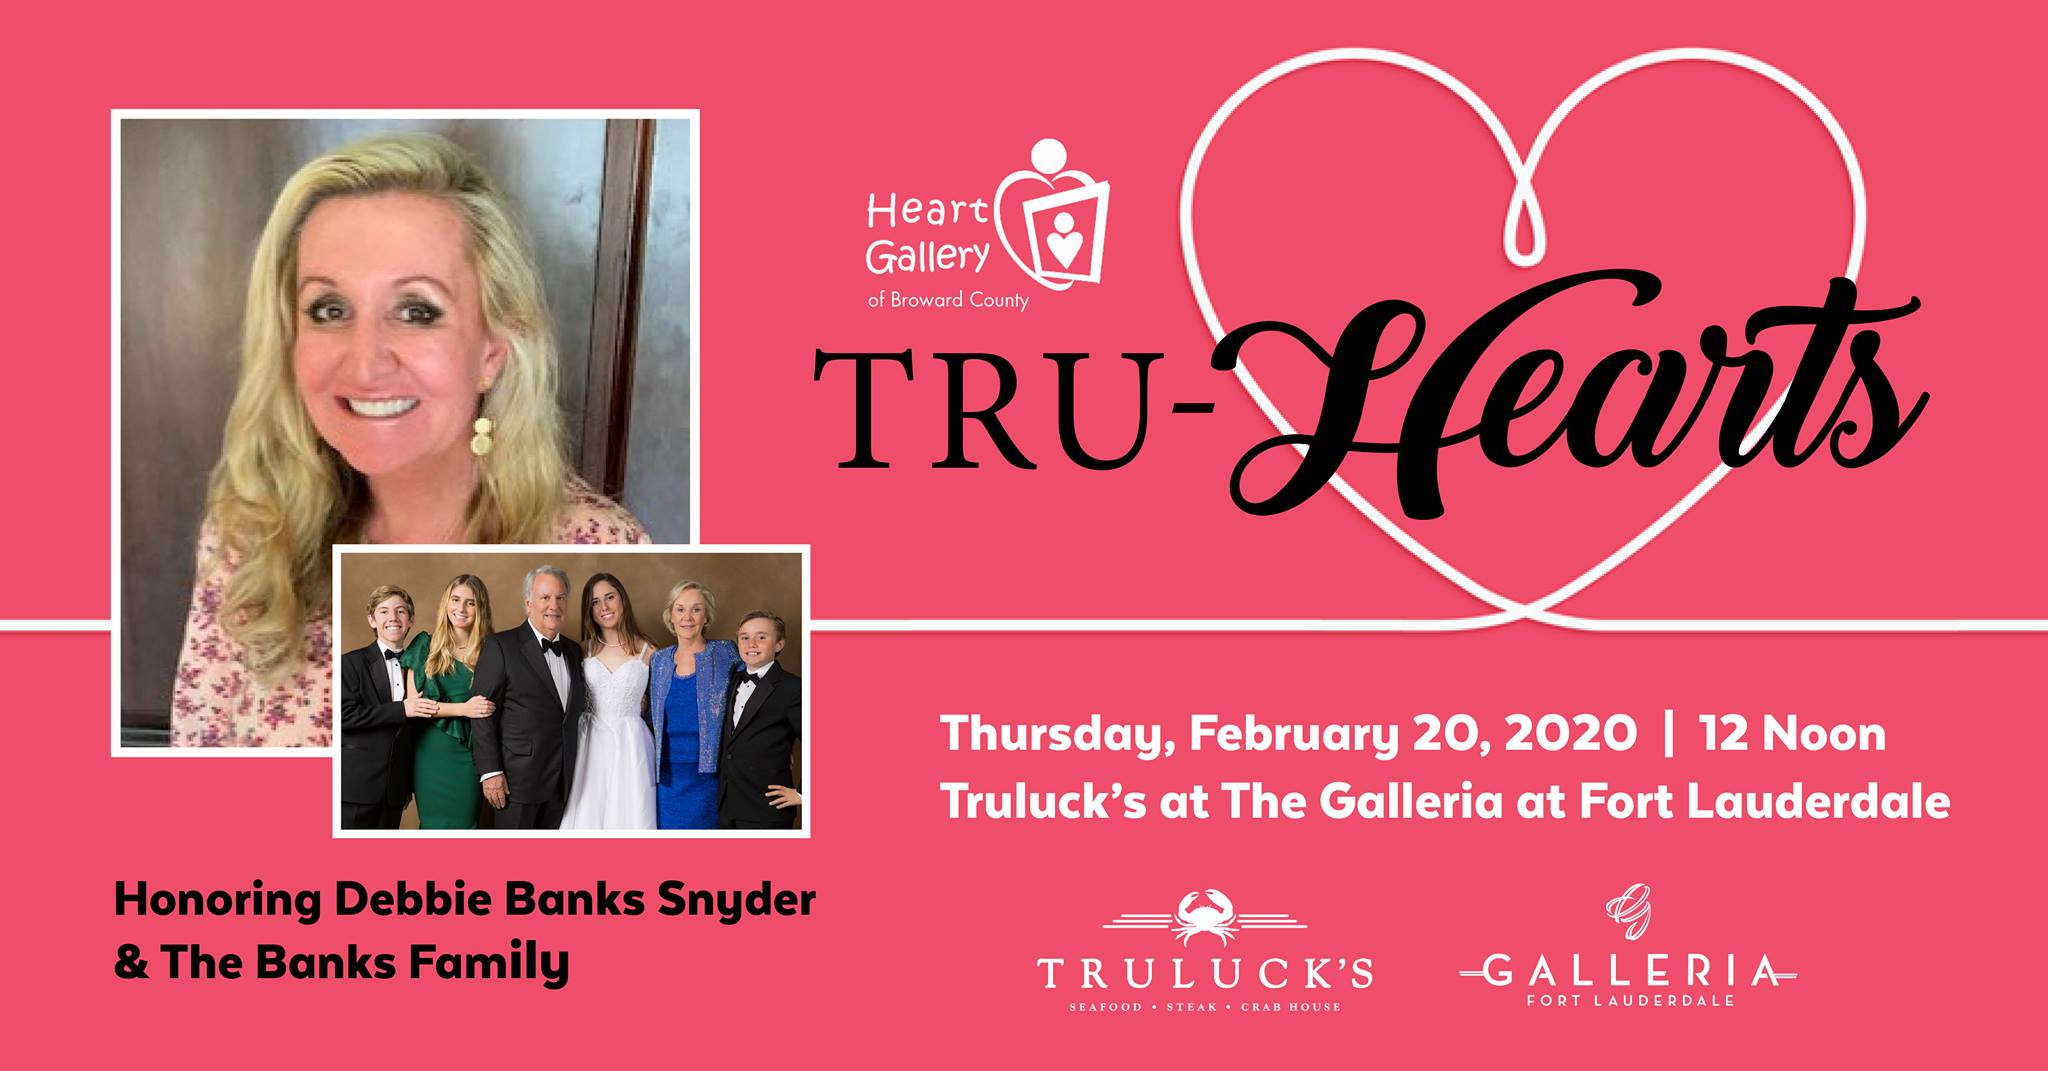 tru-hearts 2020 heart gallery of broward